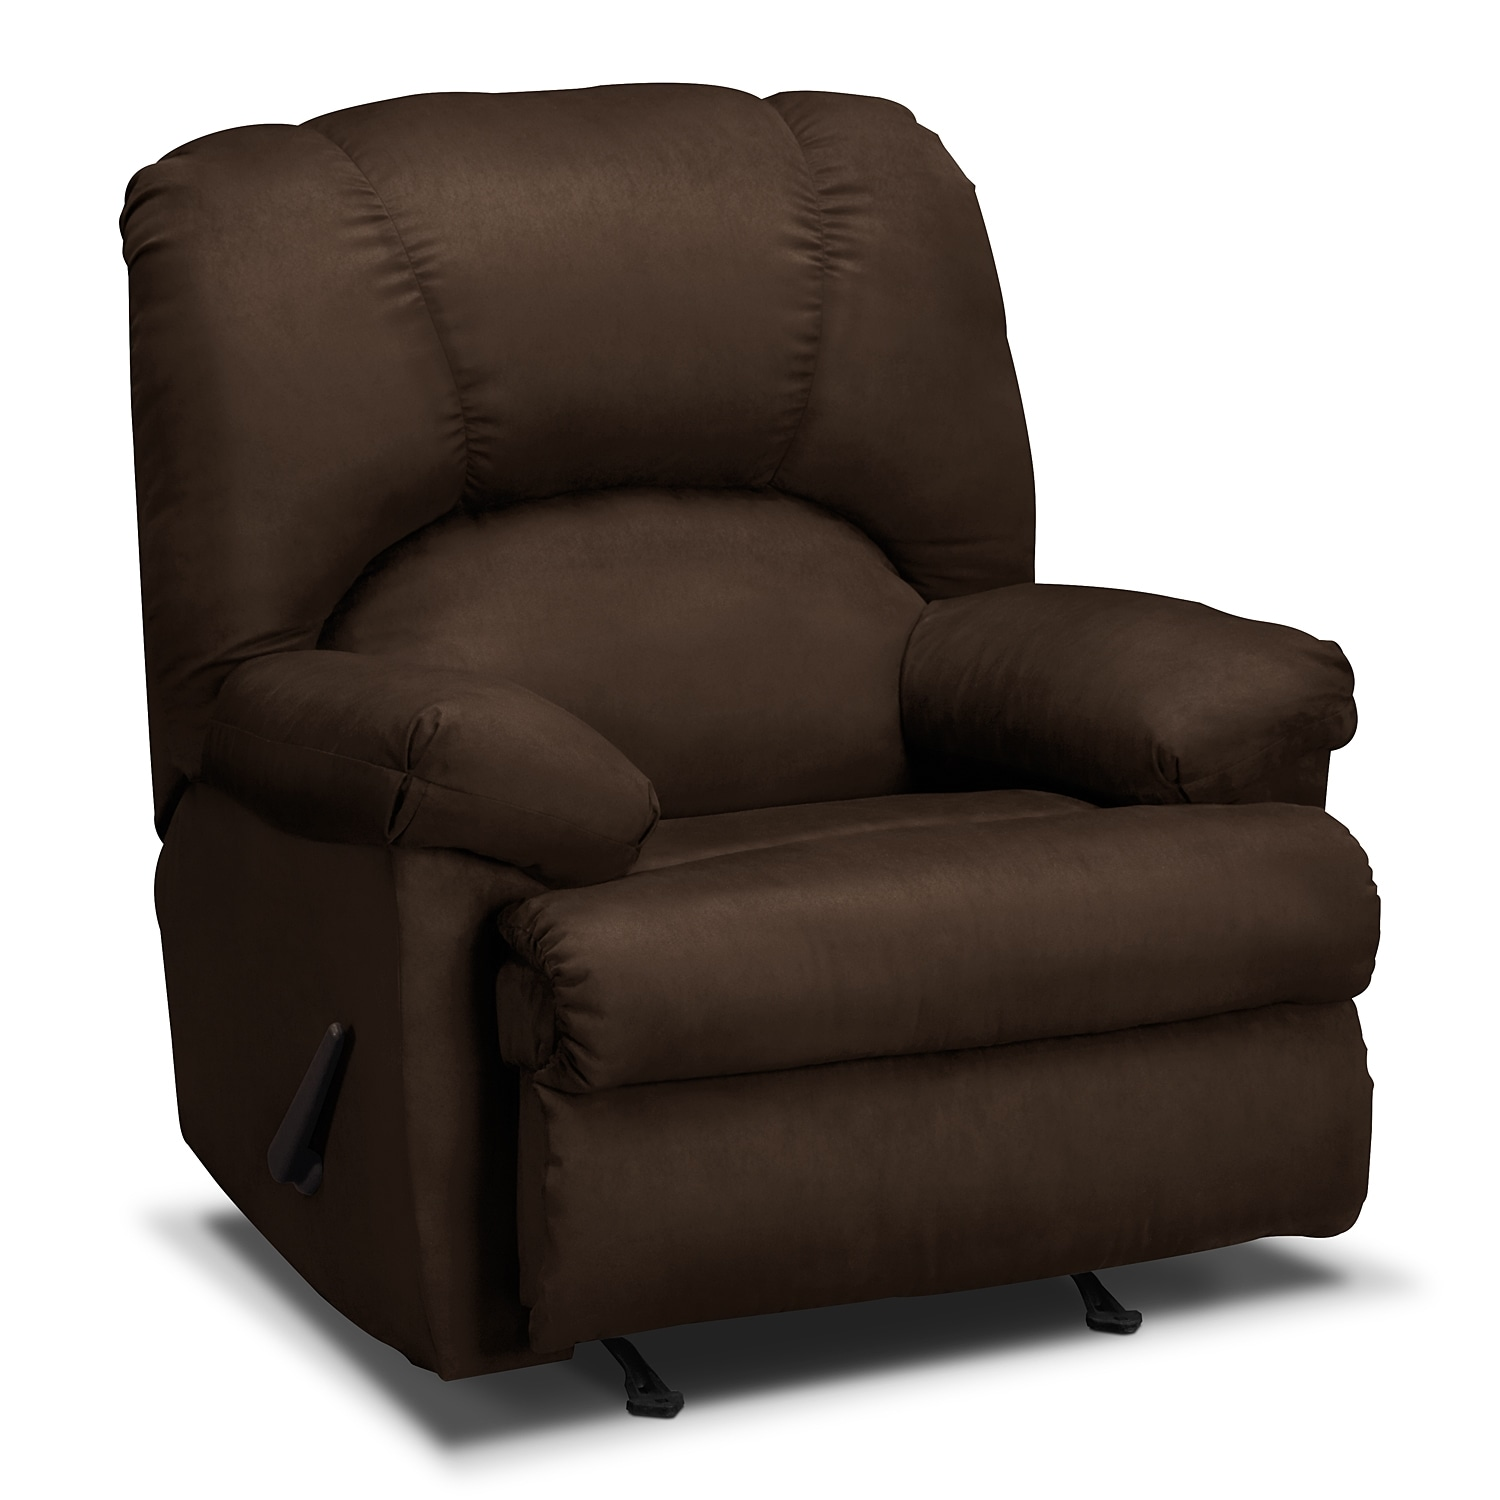 Recliner Rocking Chair Quincy Rocker Recliner Chocolate Value City Furniture